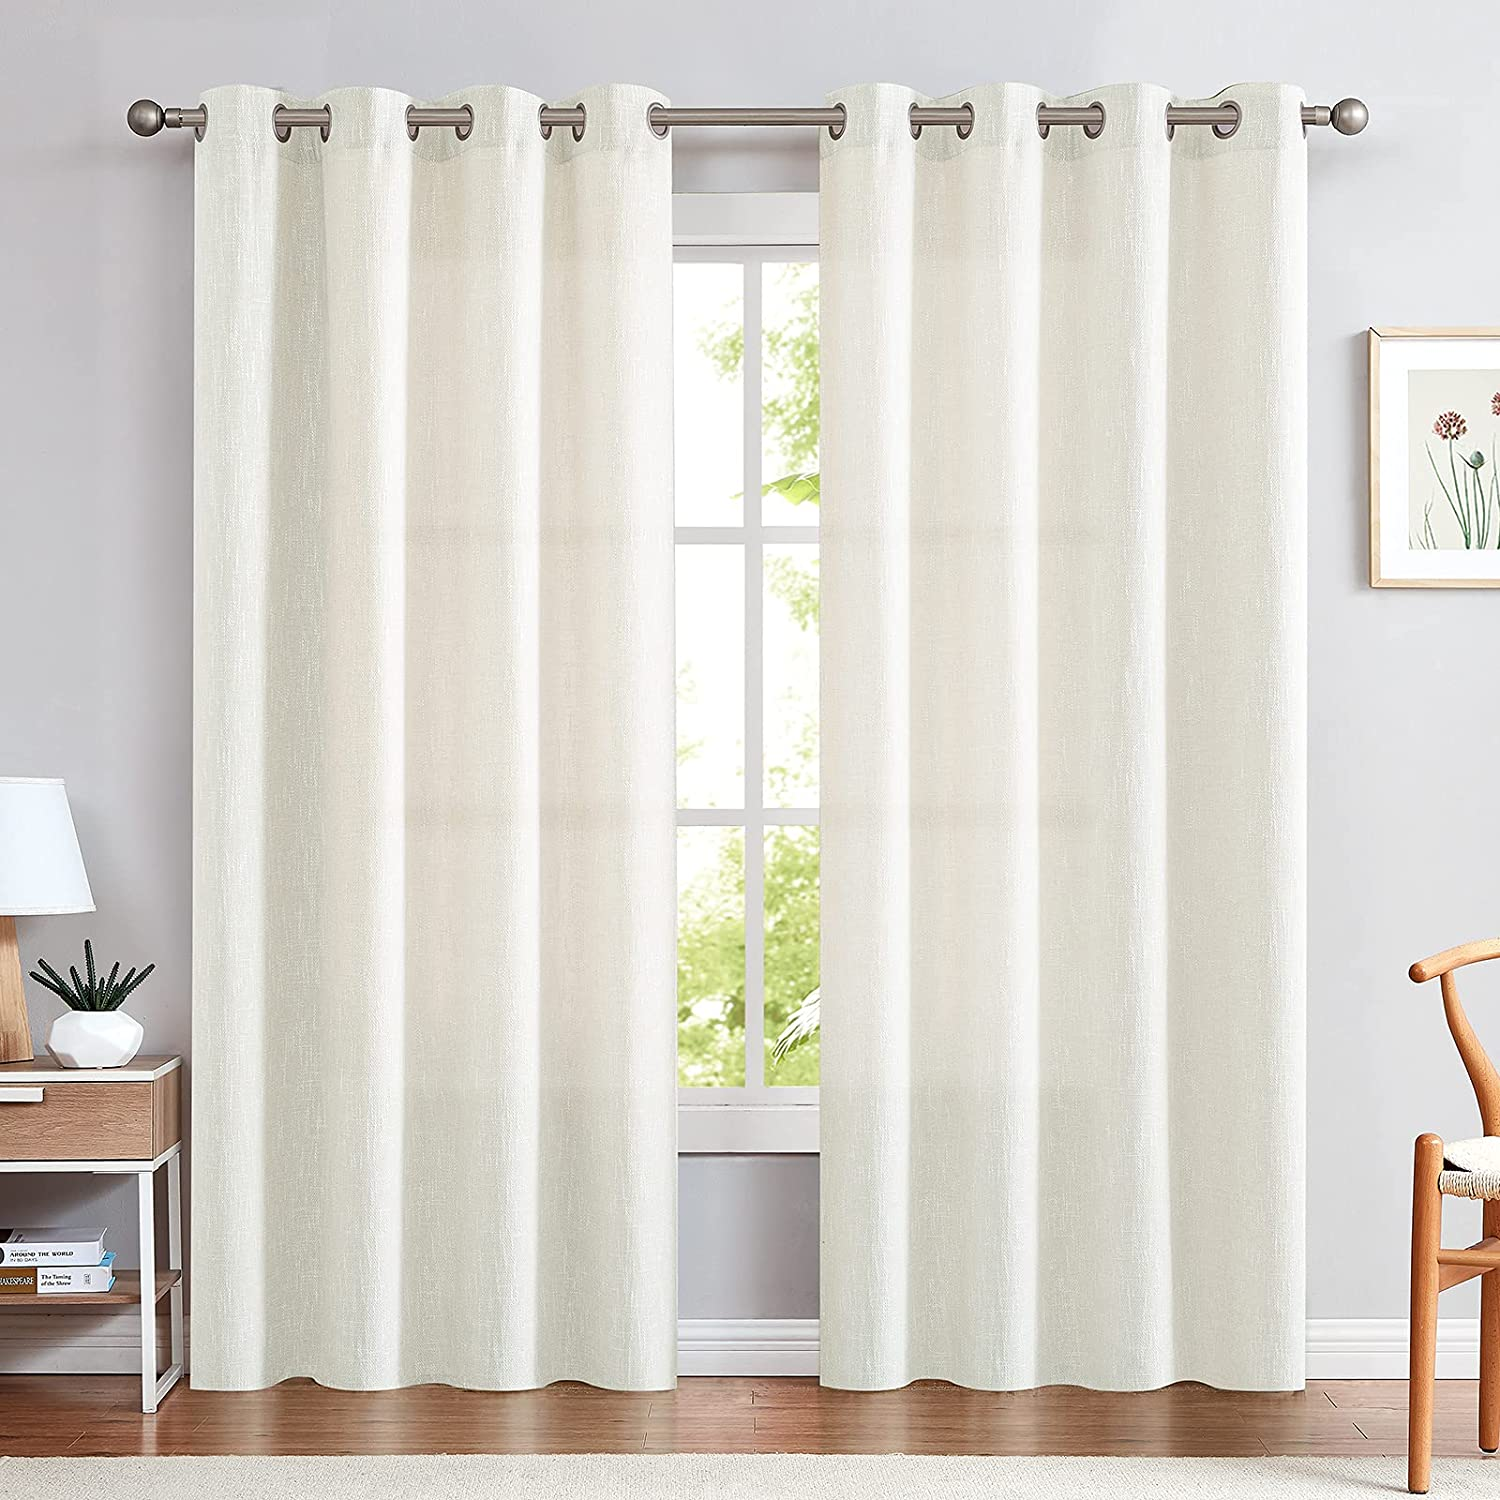 jinchan Linen At the price of surprise Textured Off White Free shipping on posting reviews Bedroom for Curtains Look